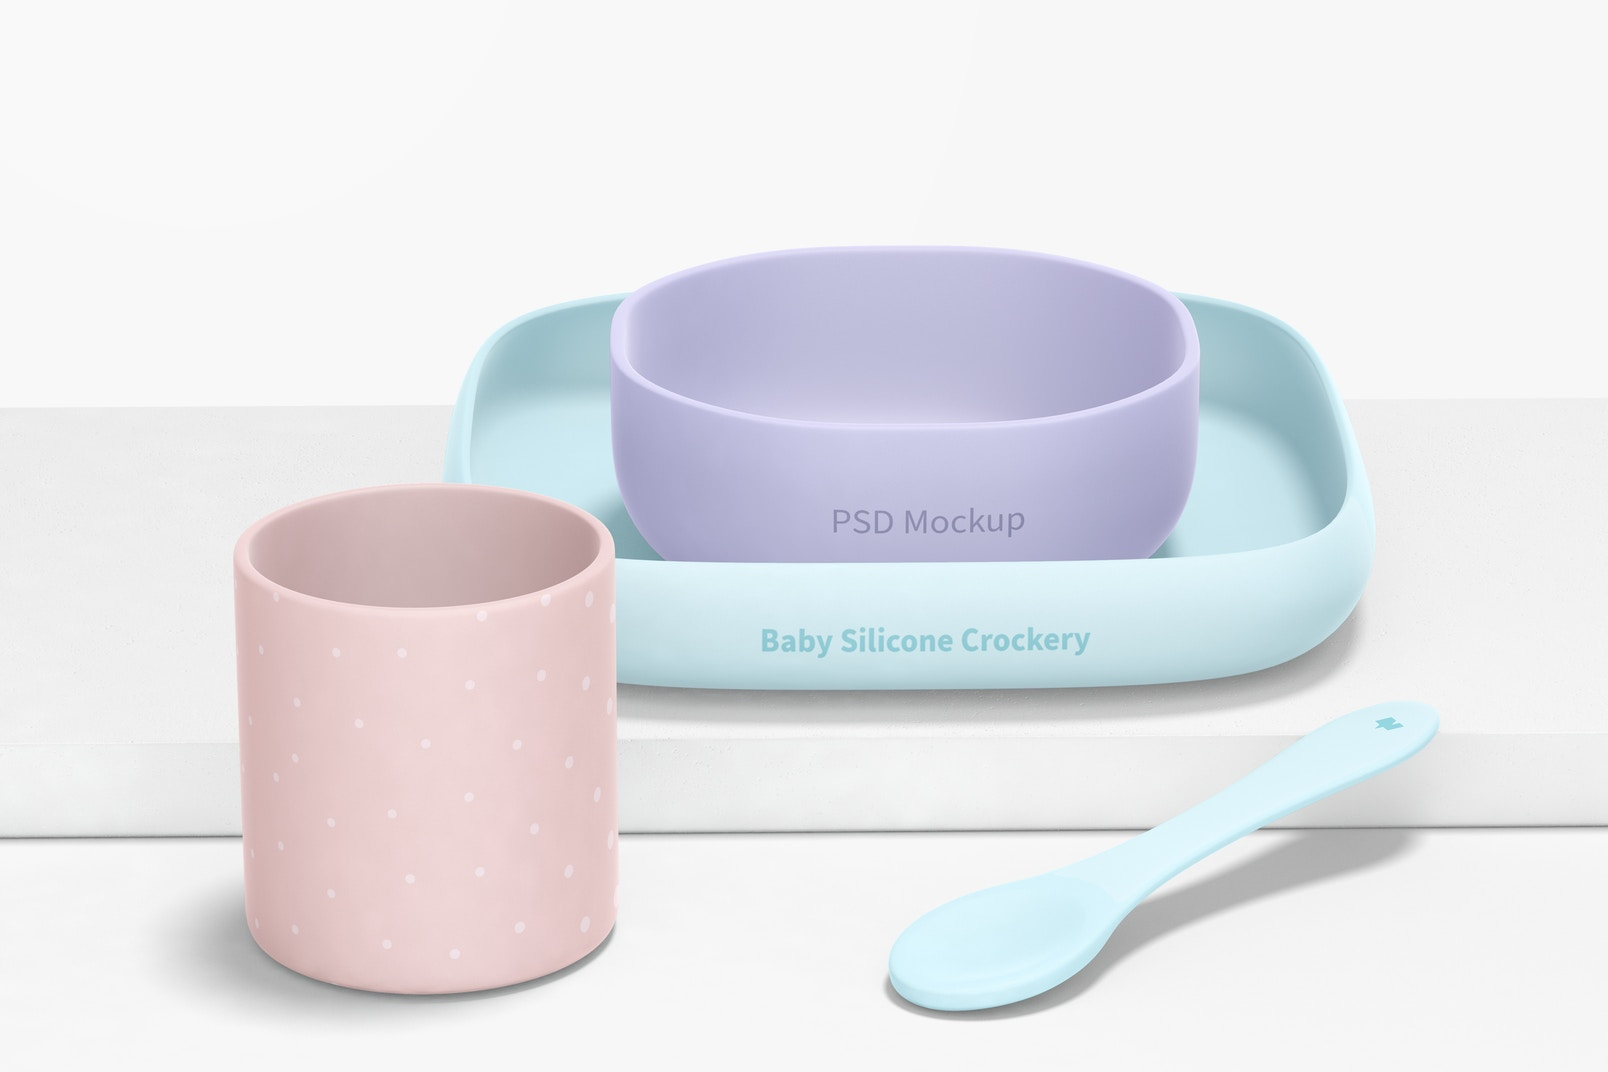 Baby Silicone Crockery Kit Mockup, Front View